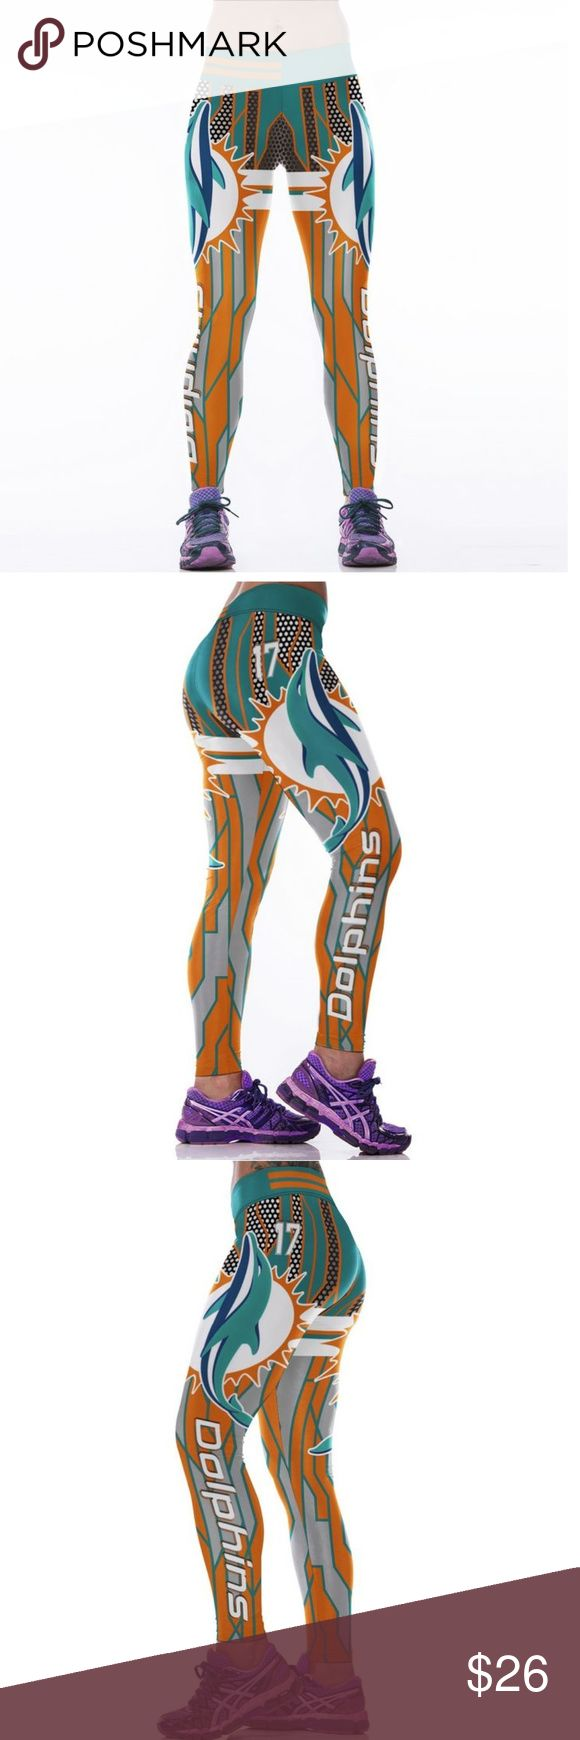 Miami Dolphins NFL Leggings Root for your favorite team in these high quality NFL leggings! Perfect wardrobe addition while watching Sunday football games. The vivid colors and designs are sure to turn heads! Get a pair now while they last to show your team support every week as they inch their way to the glorious Super Bowl Condition: Brand New in Packaging Material: Spandex / Polyester Measurements:  (Length / Waist / Hip) S/M: 36 / 27.5-37 / 33-41.5 L/XL: 36.5 / 30–39.5 / 35.5-44 Price…